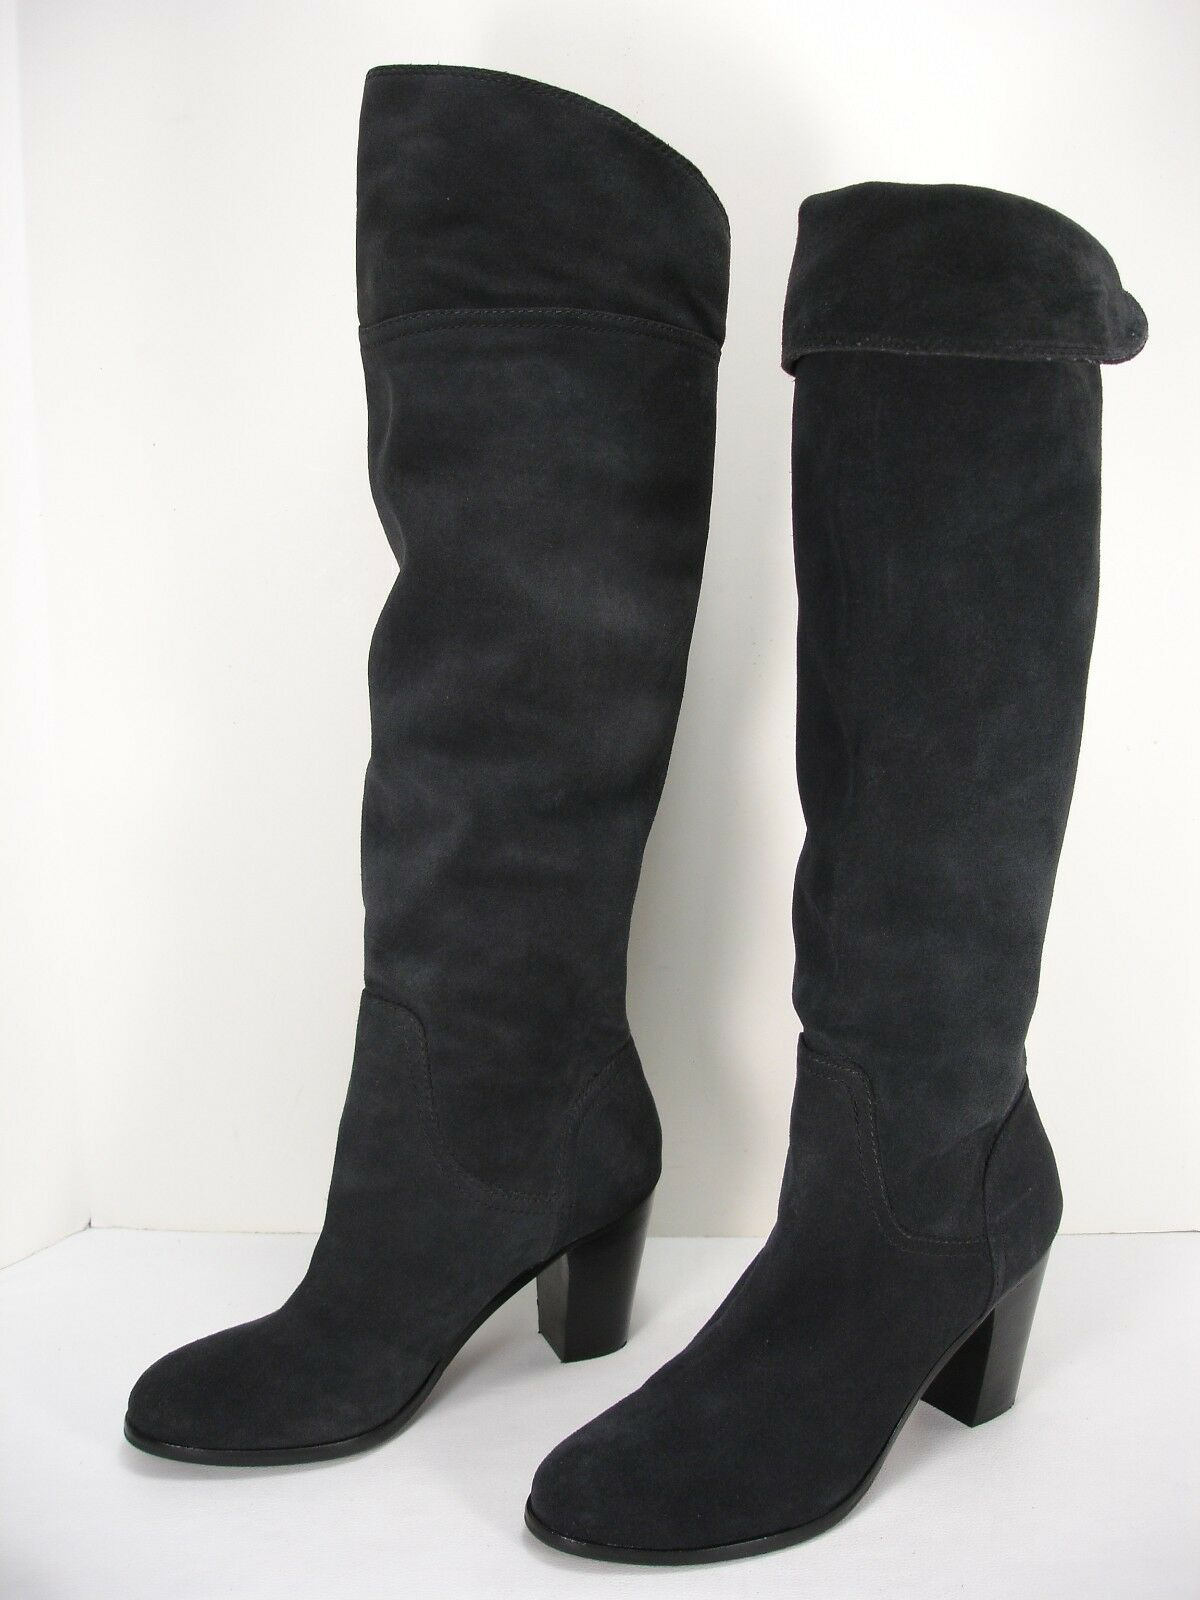 alta qualità APEPAZZA EDVIGE SUEDE PULL PULL PULL ON KNEE HIGH OVER THE KNEE stivali donna 9.5 M  vendita outlet online